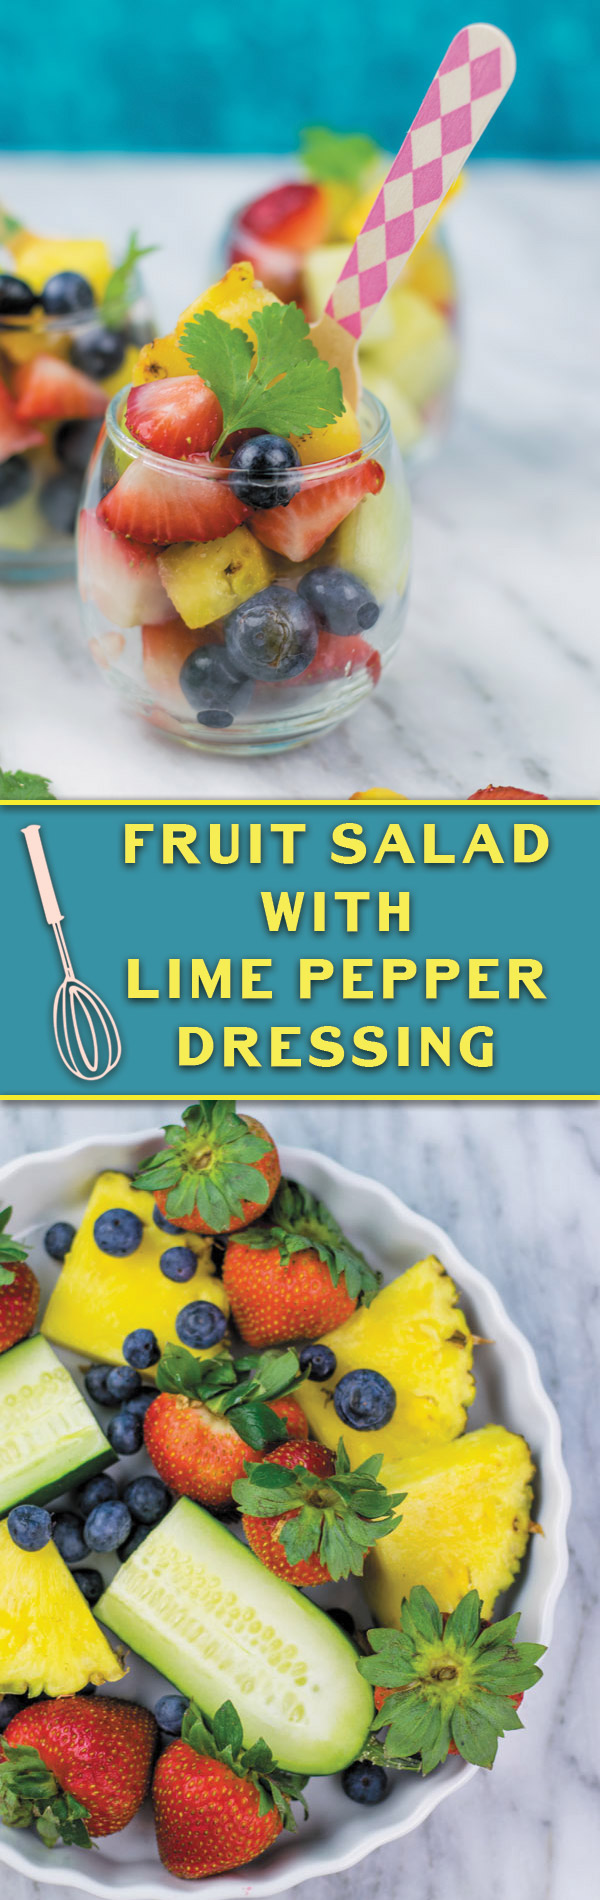 Summer Frui Salad - a simple 15 mins fruit salad, great for BBQ's, summer picnics or a light meal!